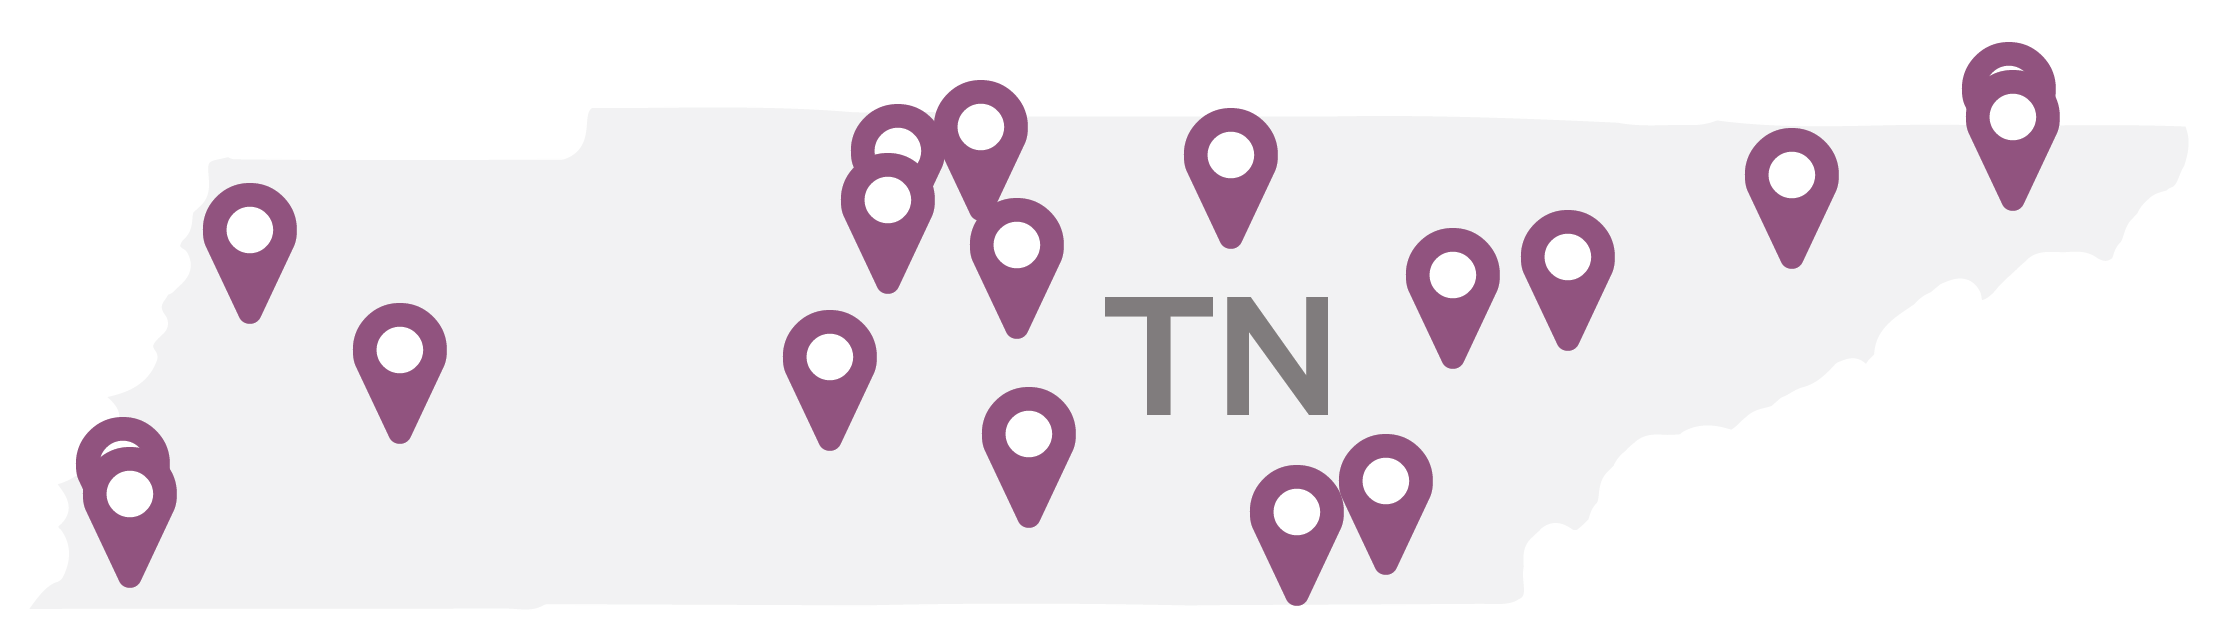 A map of Tennessee with purple flags marking the colleges in this study